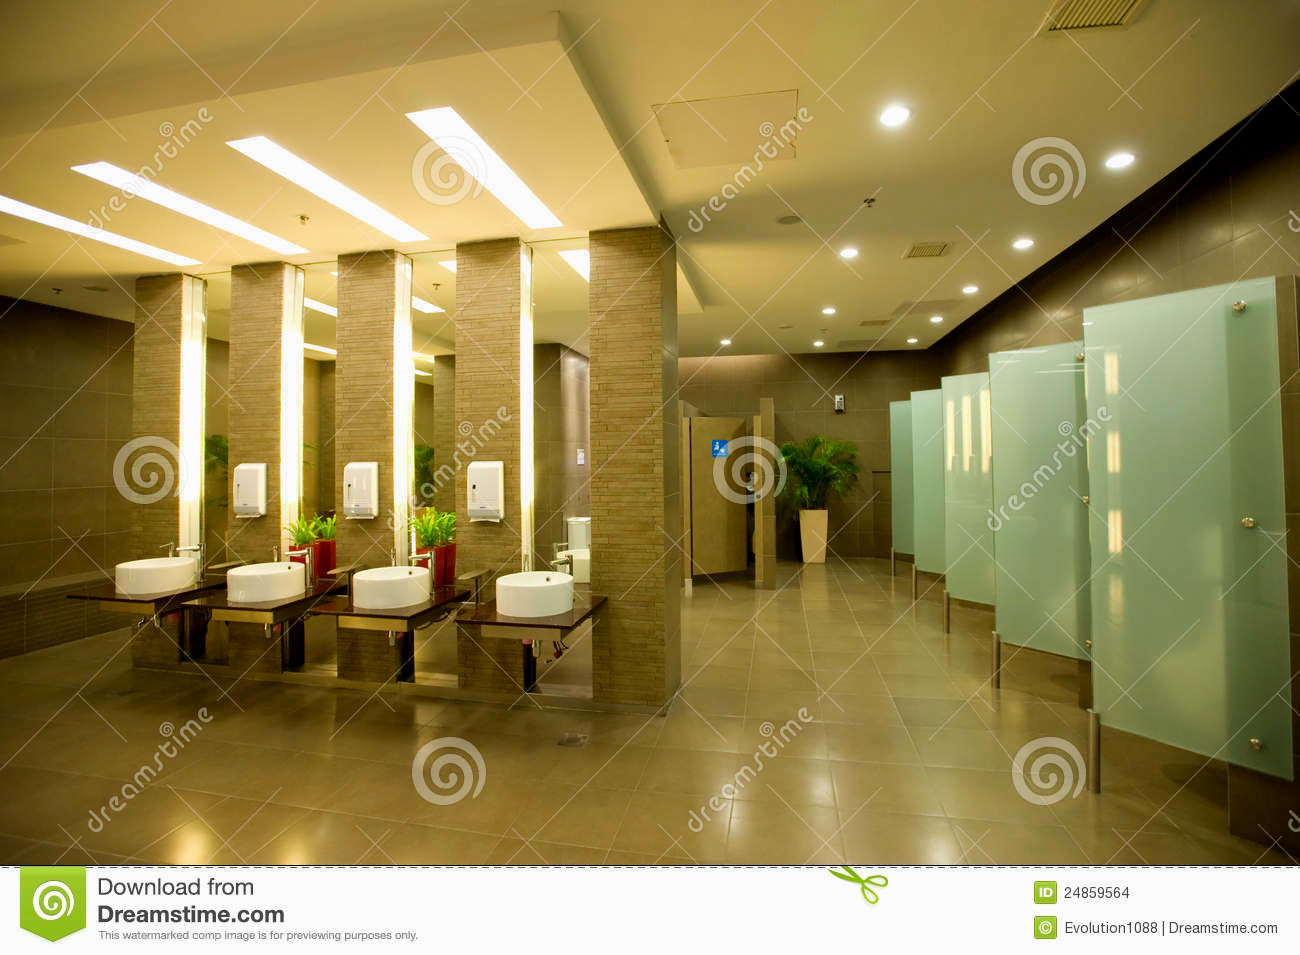 luxury dreams about going to the bathroom design-Wonderful Dreams About Going to the Bathroom Portrait